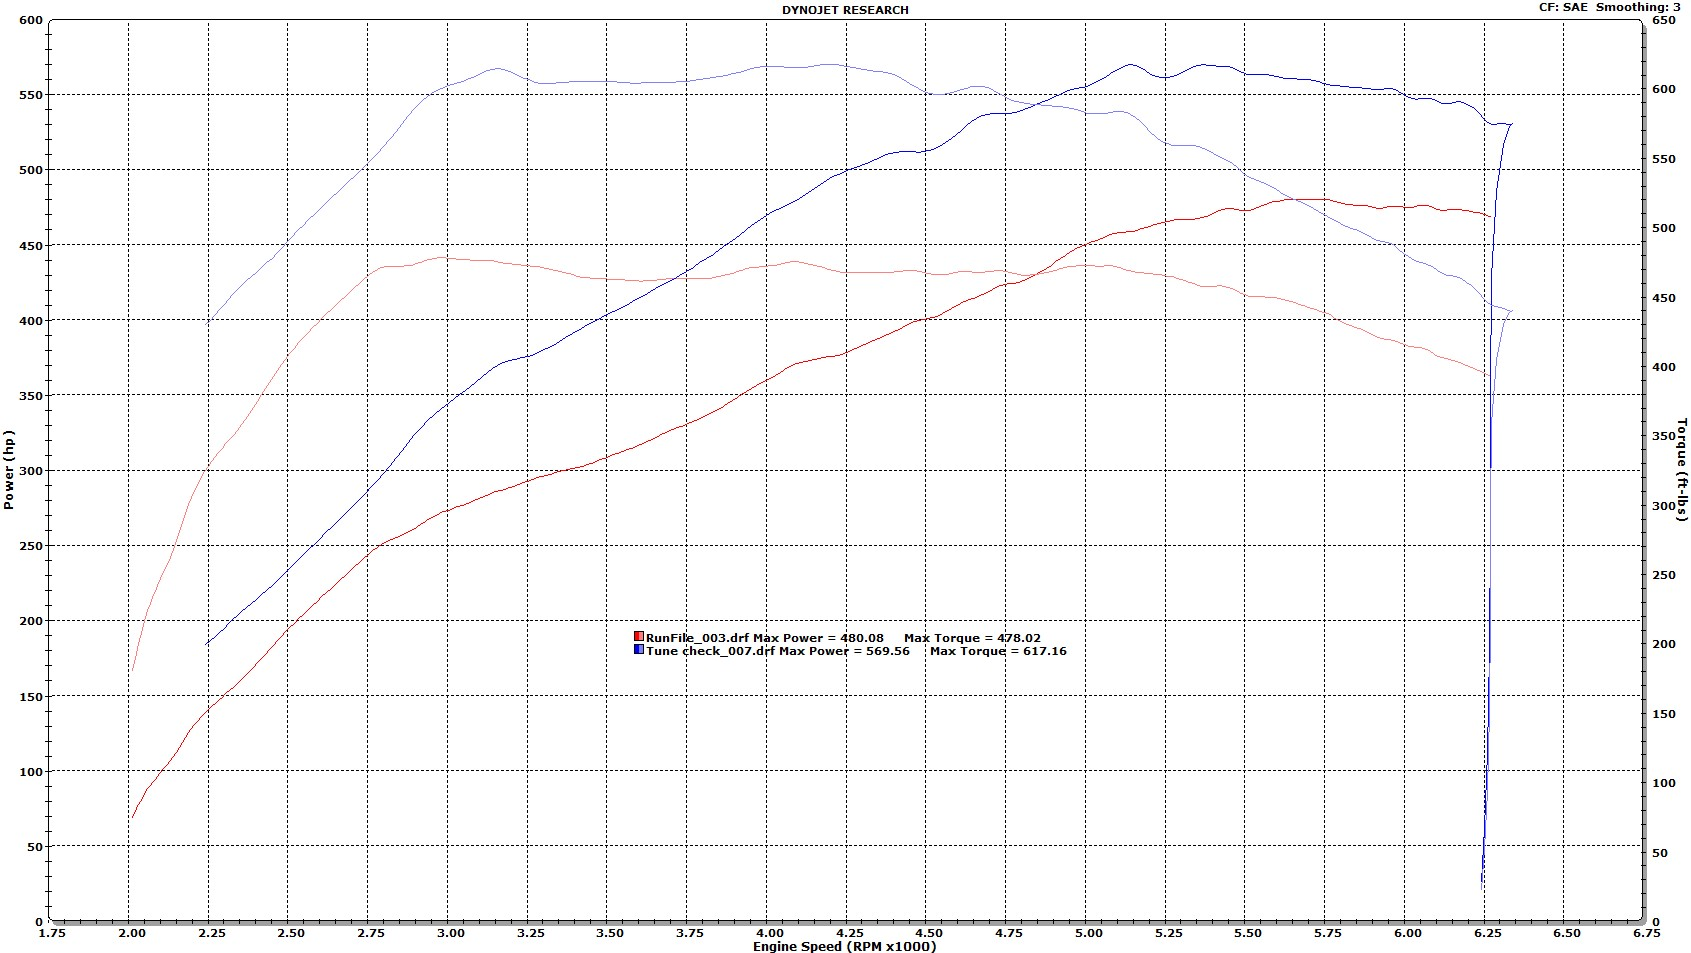 Mercedes-Benz CLS63 AMG Dyno Graph Results